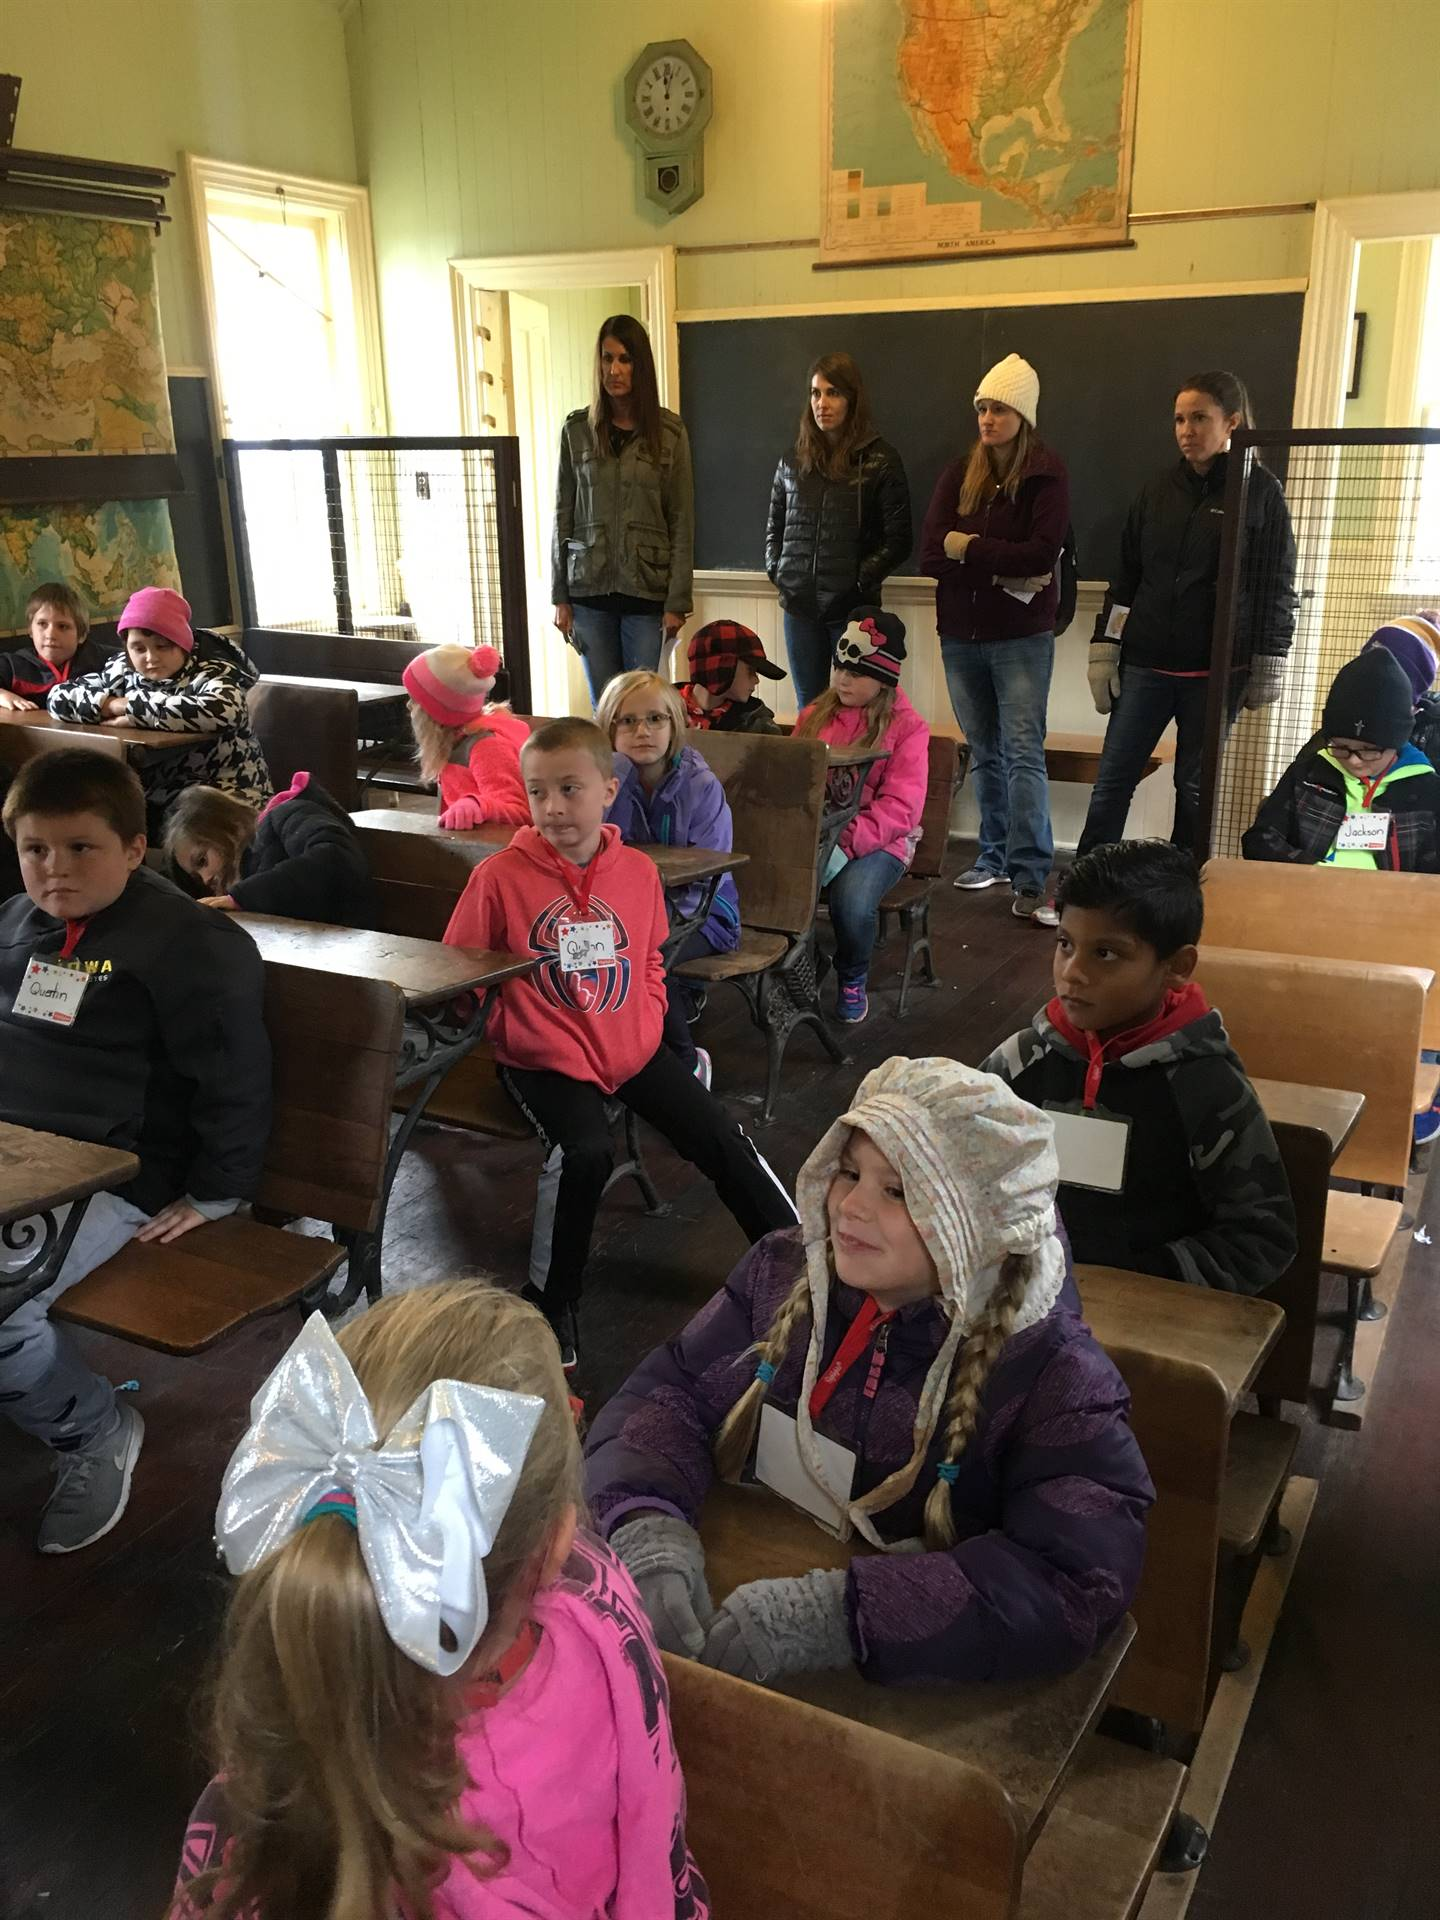 Second grade students in a one-room schoolhouse